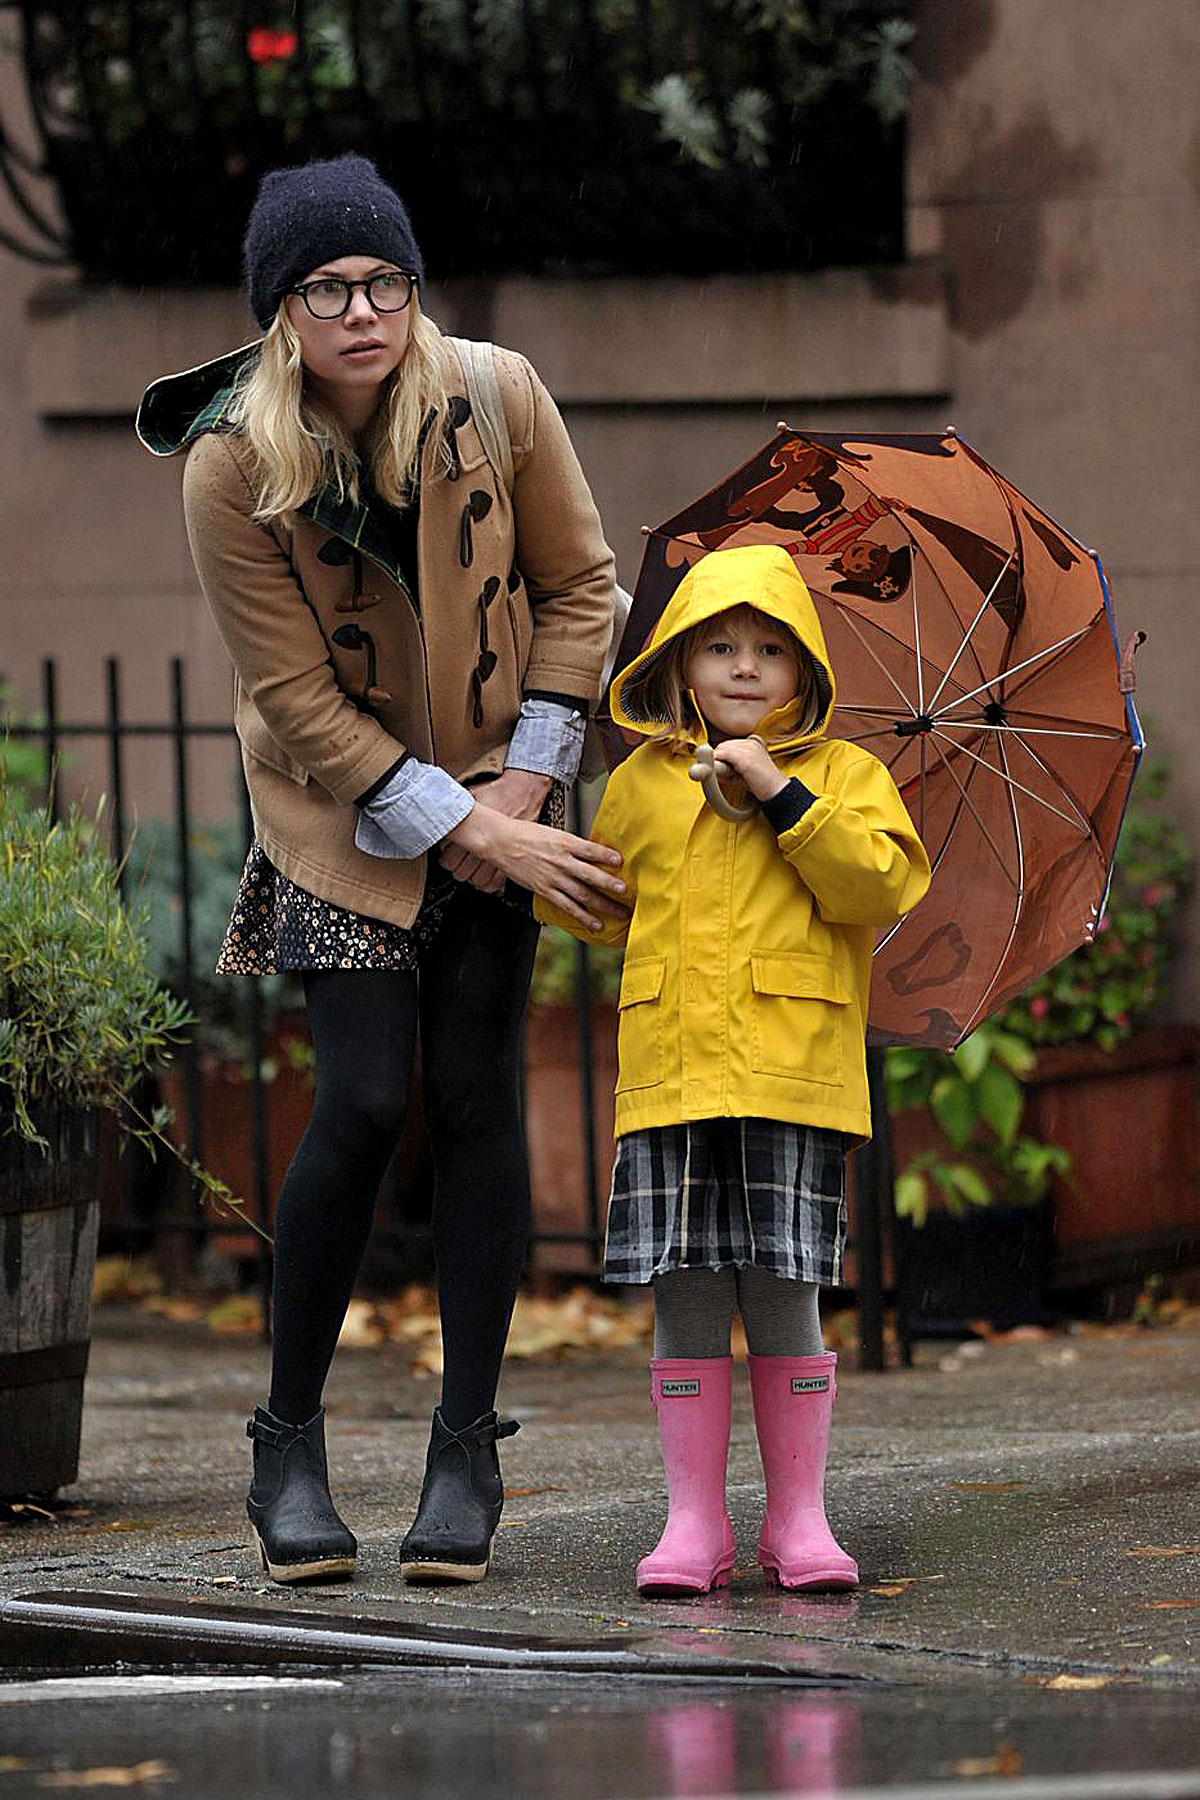 PHOTO GALLERY: Matilda Ledger is Rainy Day Adorable